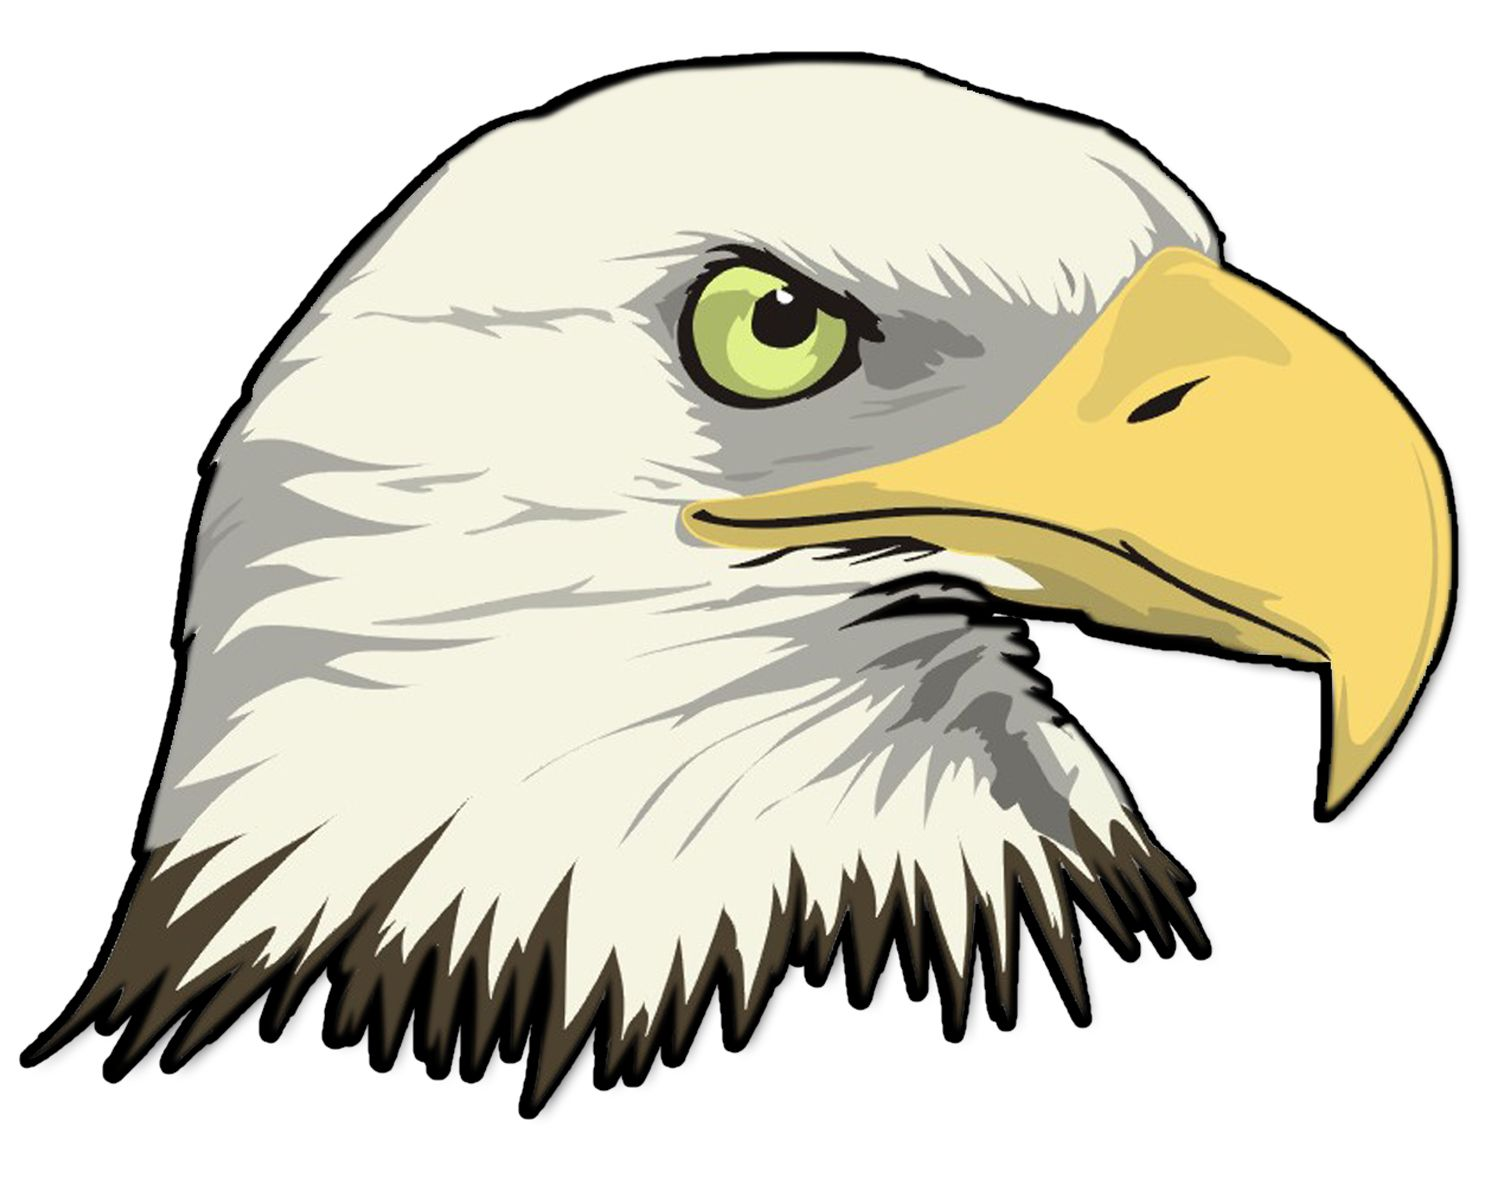 1500x1182 Photos Of Eagle Heads Eagle Head Files Wall Papper